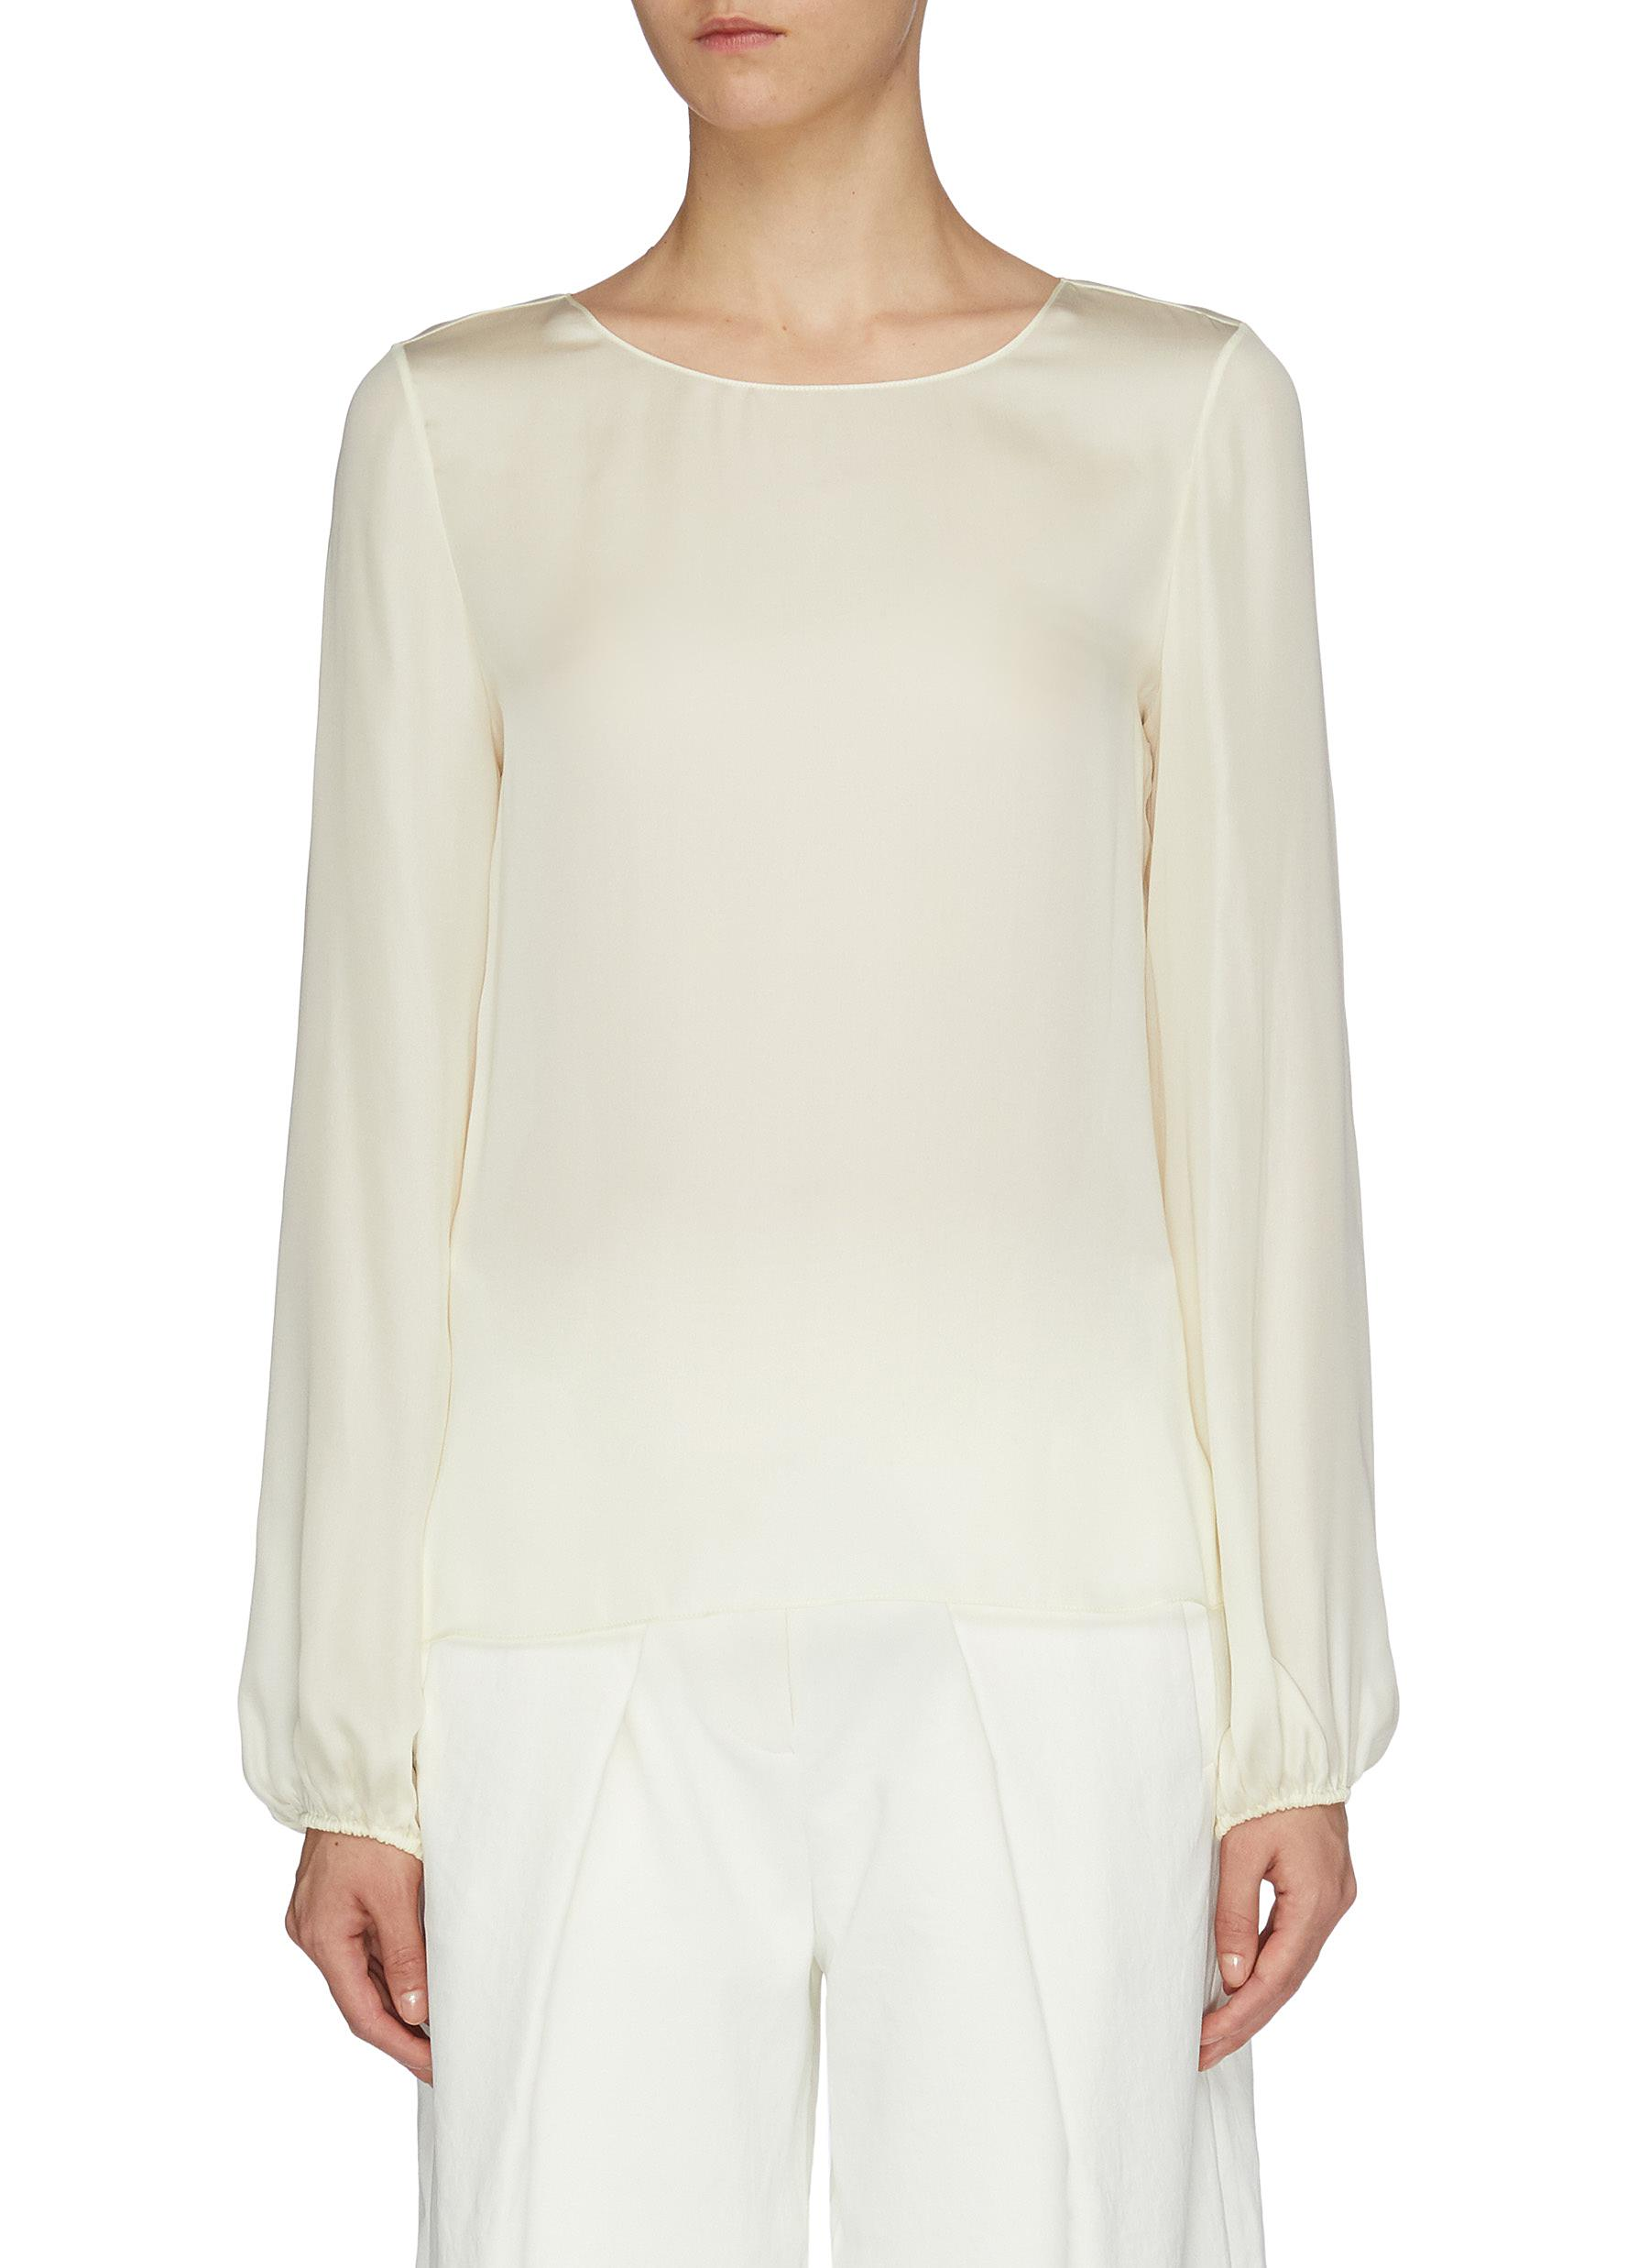 Blouson sleeve top by Theory